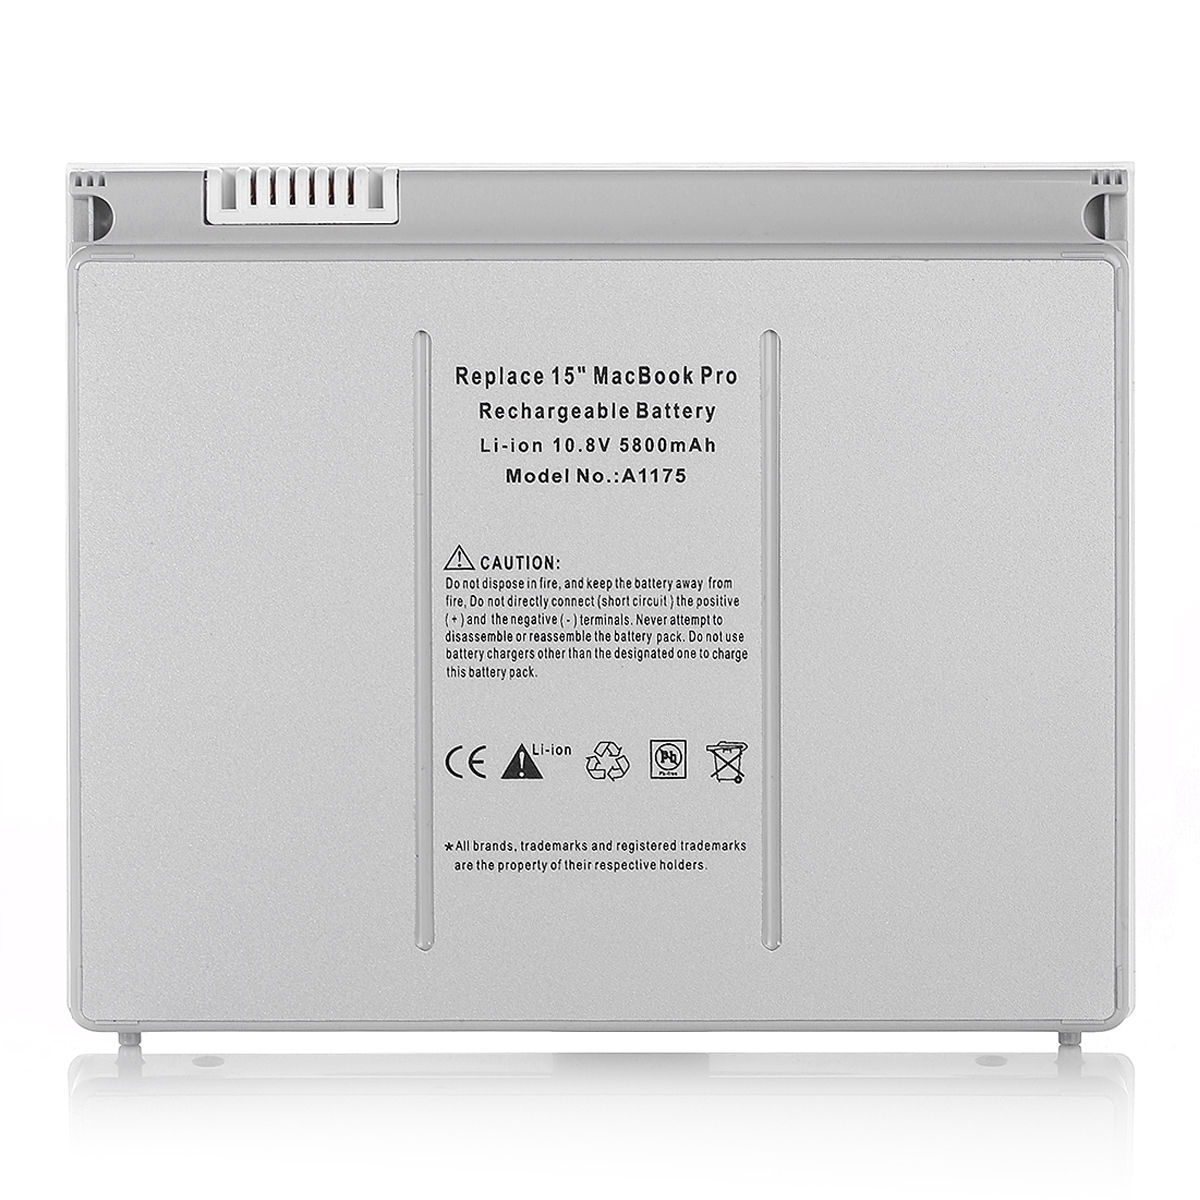 Replacement Apple MacBook Pro 15 inch MA463 Battery